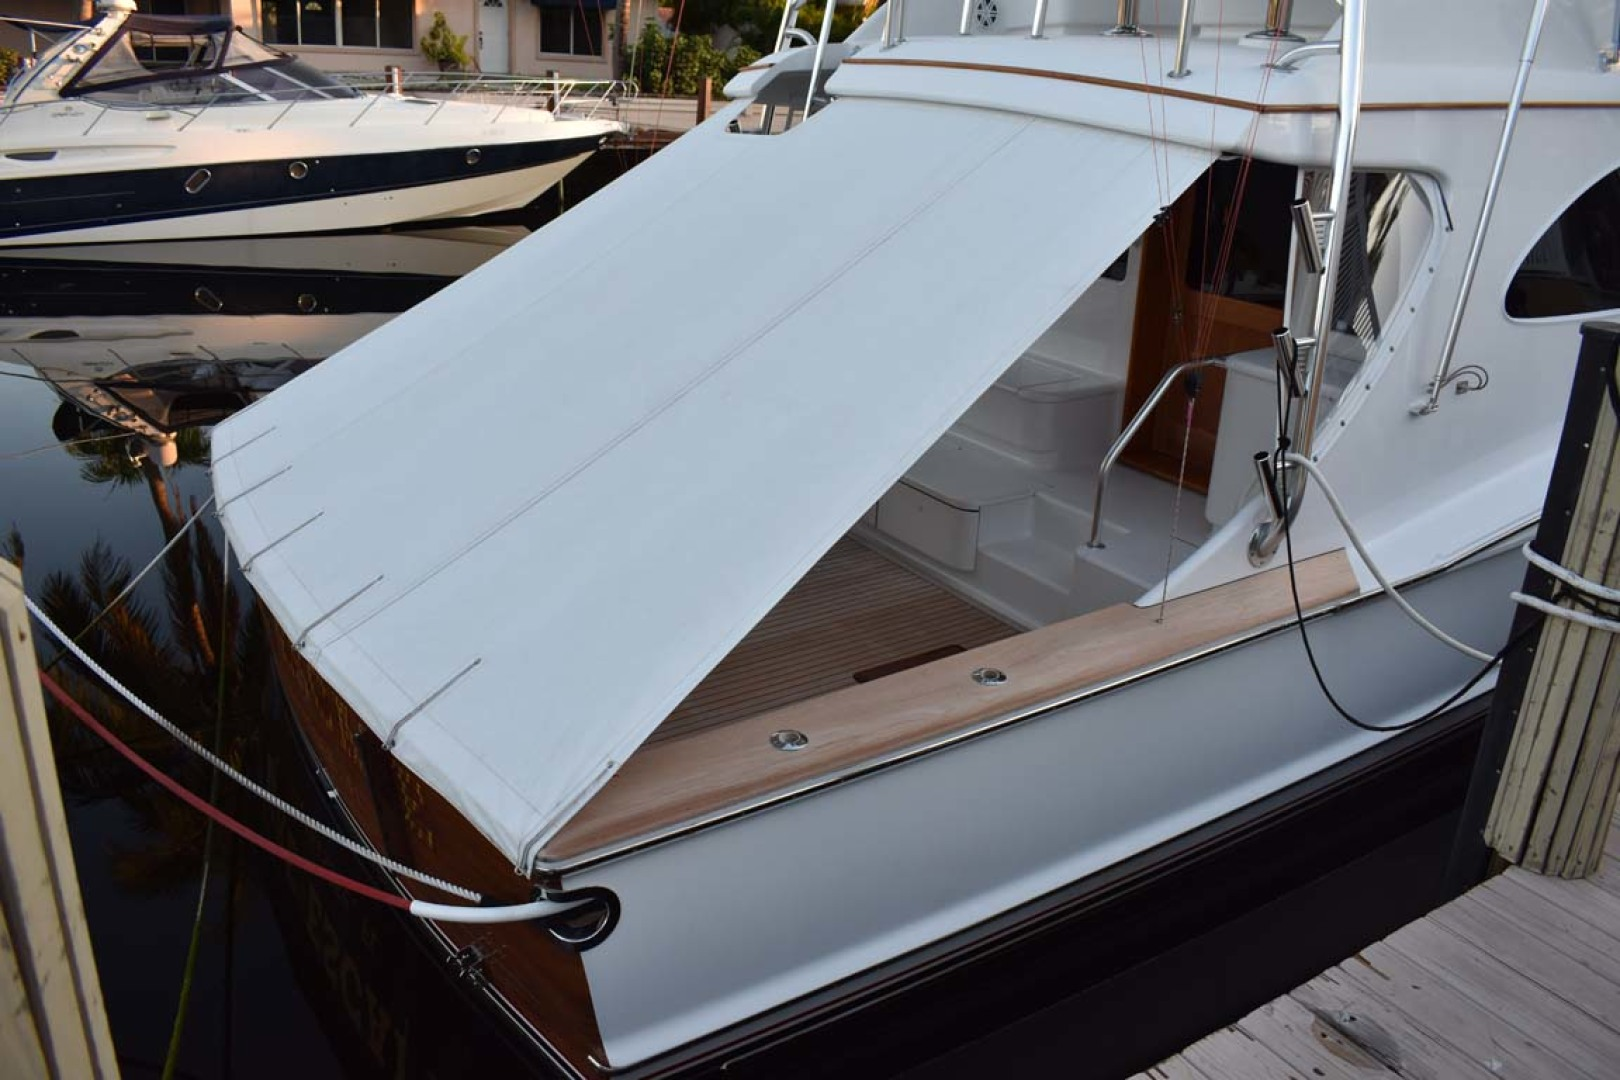 Spencer-Sportfish 2013-Fire Escape Pompano Beach-Florida-United States-Cockpit Cover-1274299 | Thumbnail